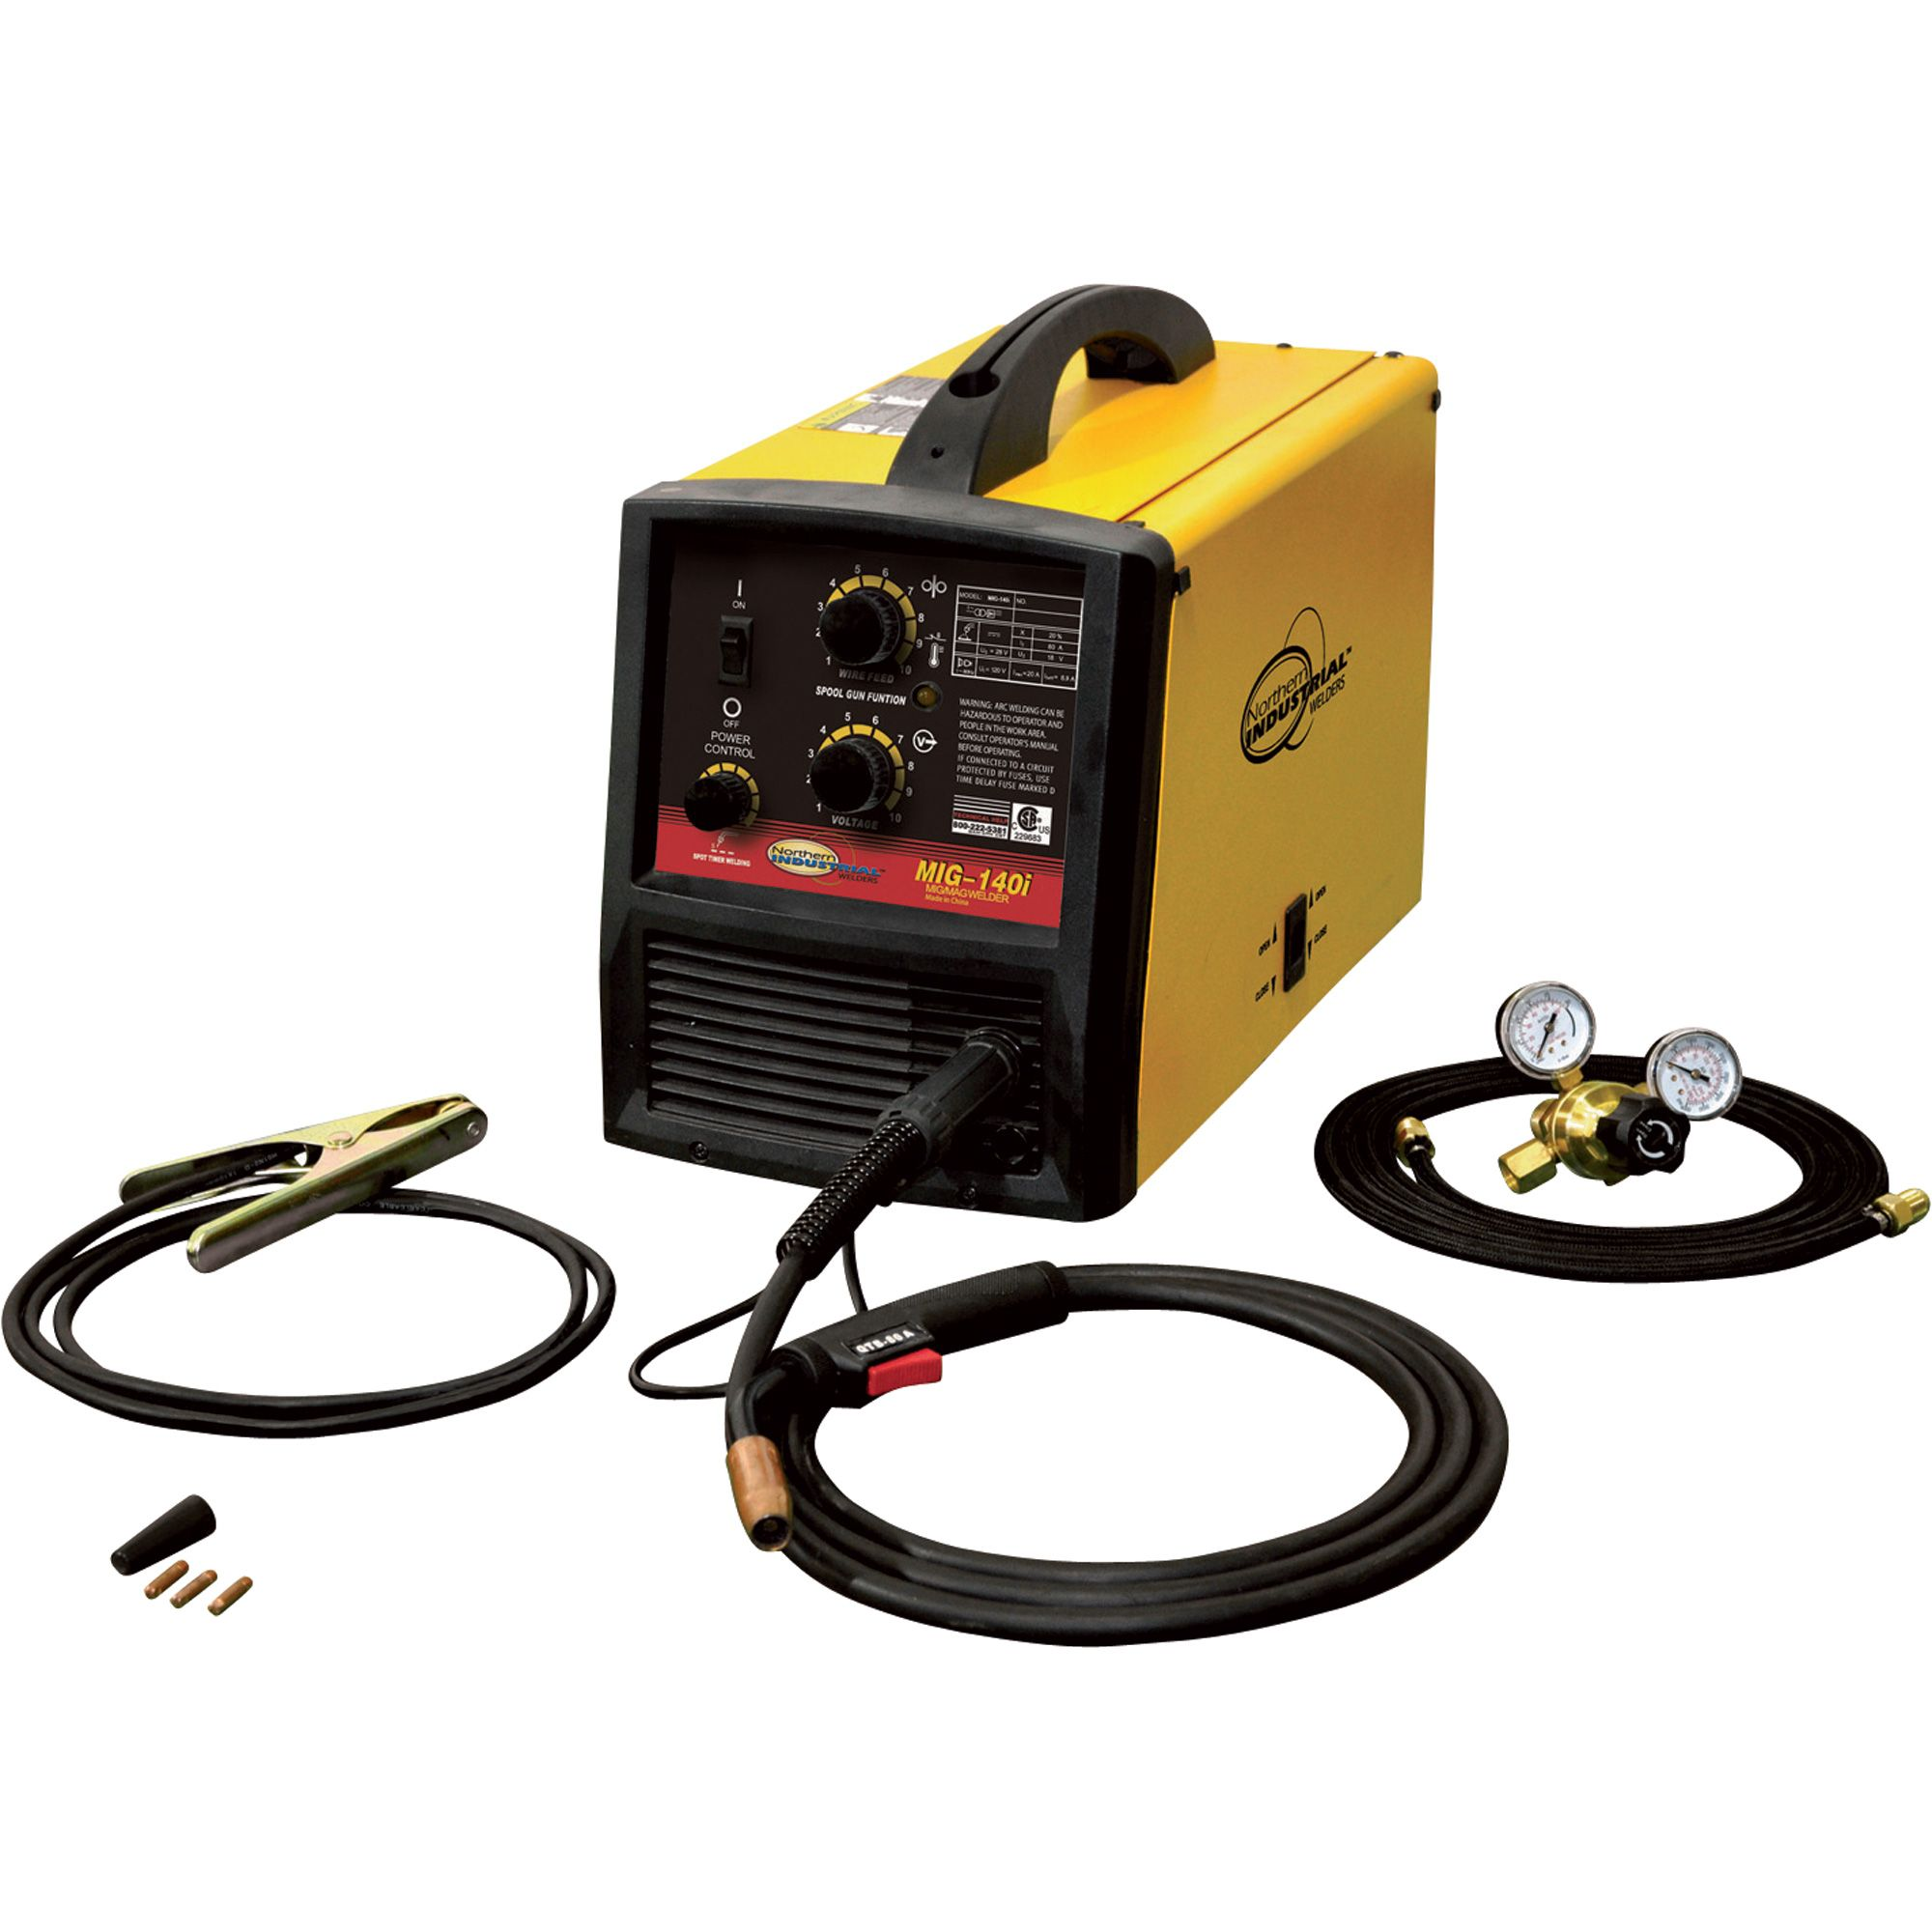 Northern Industrial Welders Mig 140i Wire Feed Welder Ss And Cord Takeup Reel For Electric Powered Lawn On Wiring A Extension Alum